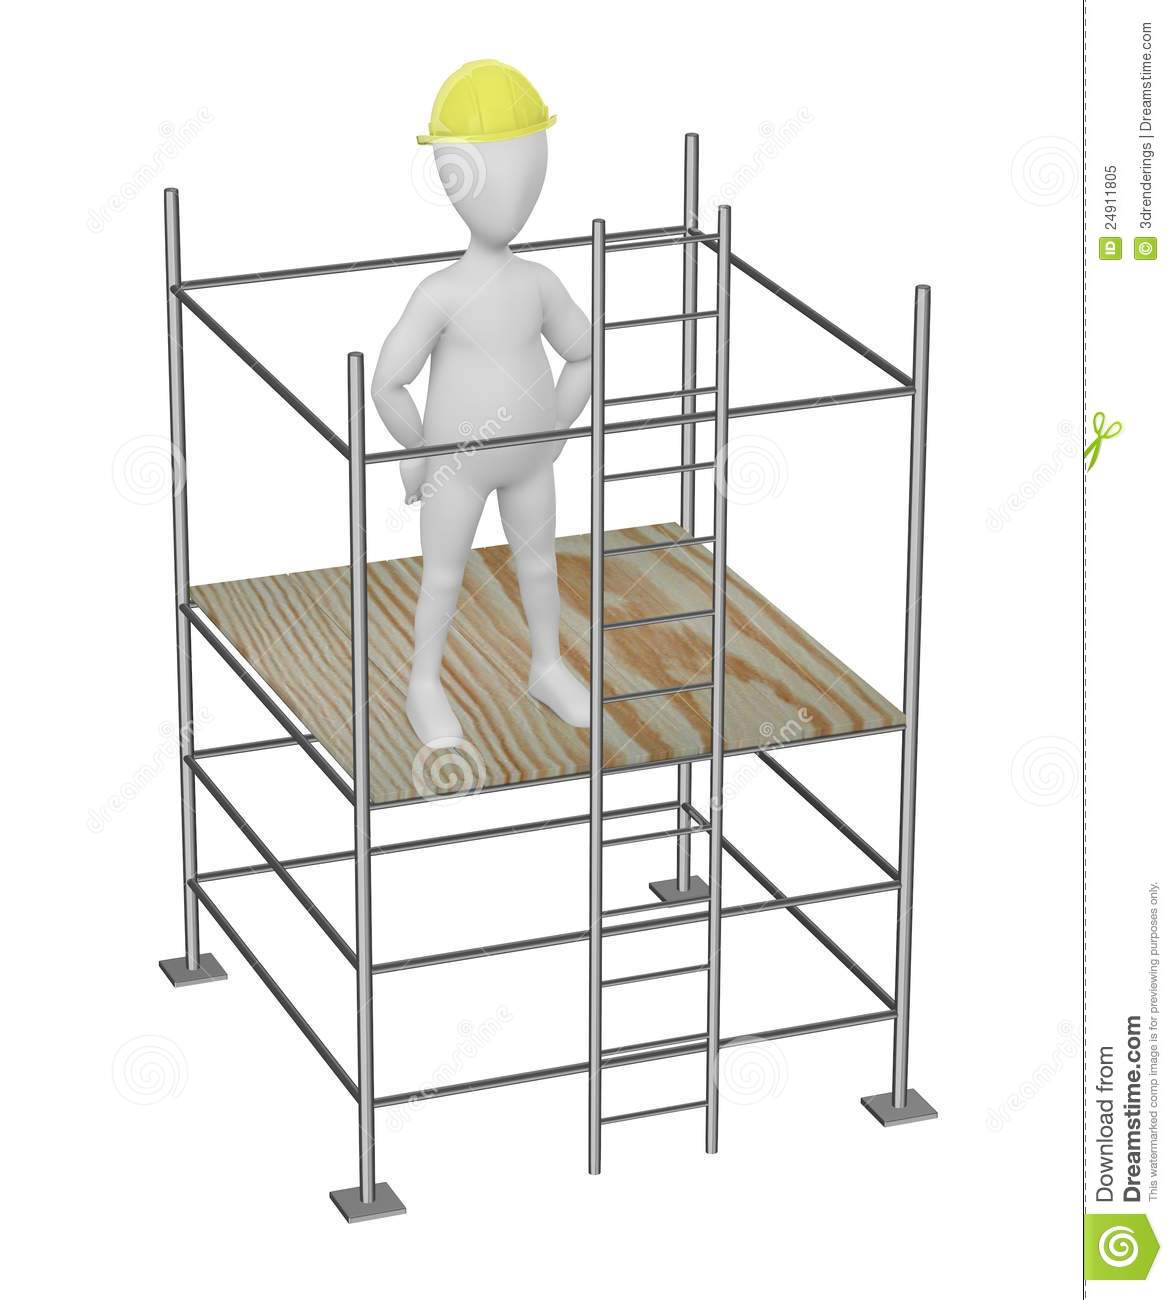 Working On Scaffolding : Cartoon character on scaffolding not working stock